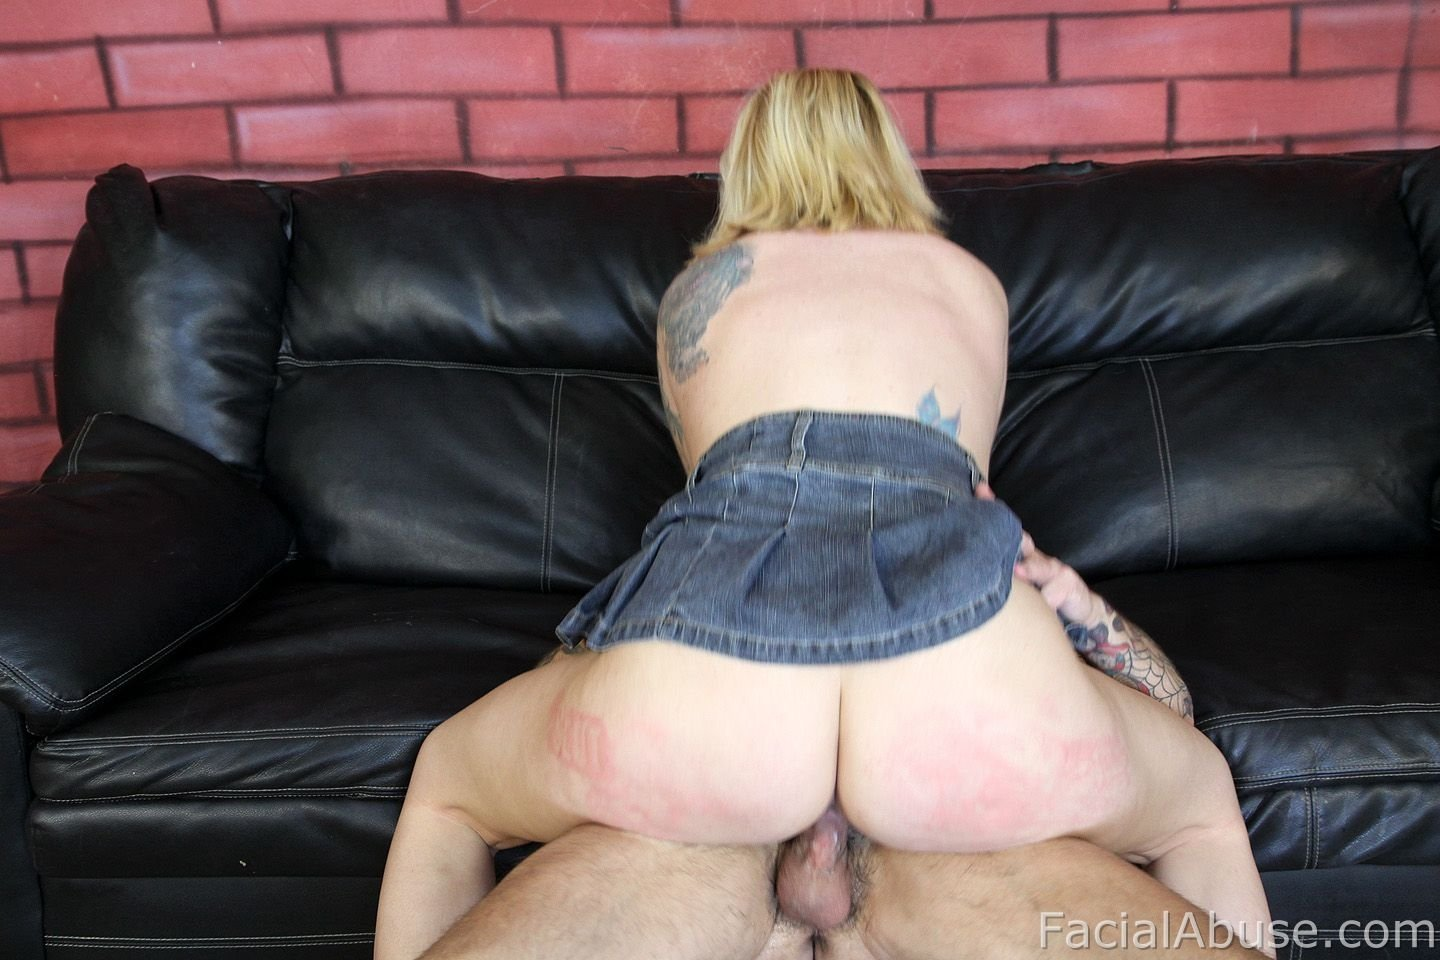 Kim cruz thick latina gives bbc blowjob in her office #1